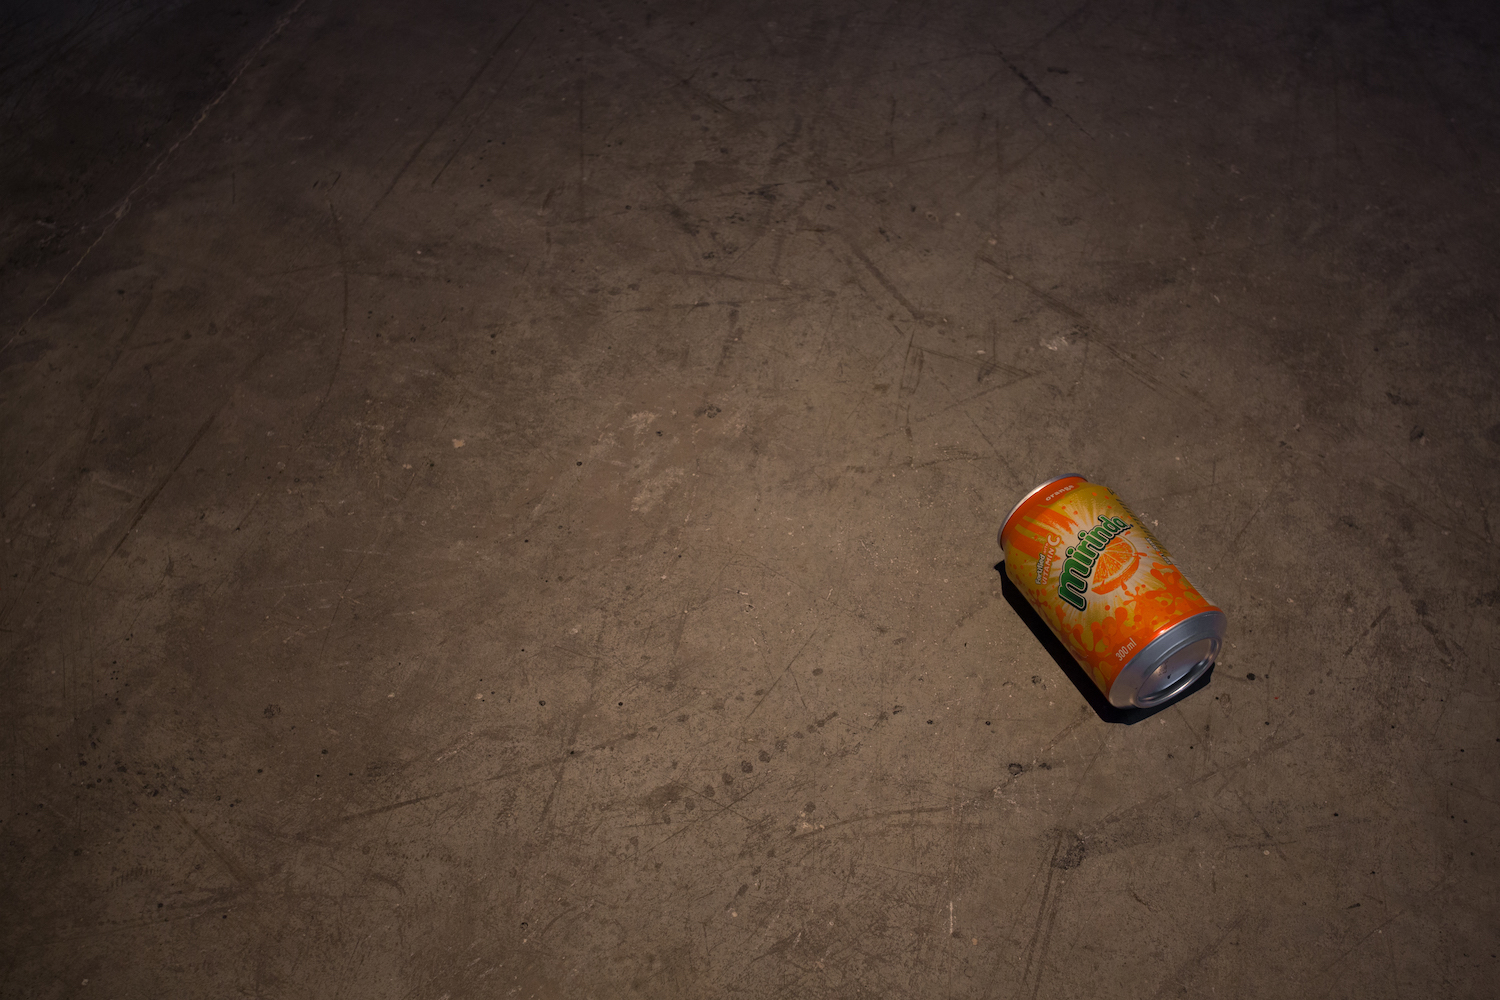 Lantian Xie  Dubayygeists - Spilled Mirinda (commissioned for the exhibition) 2015